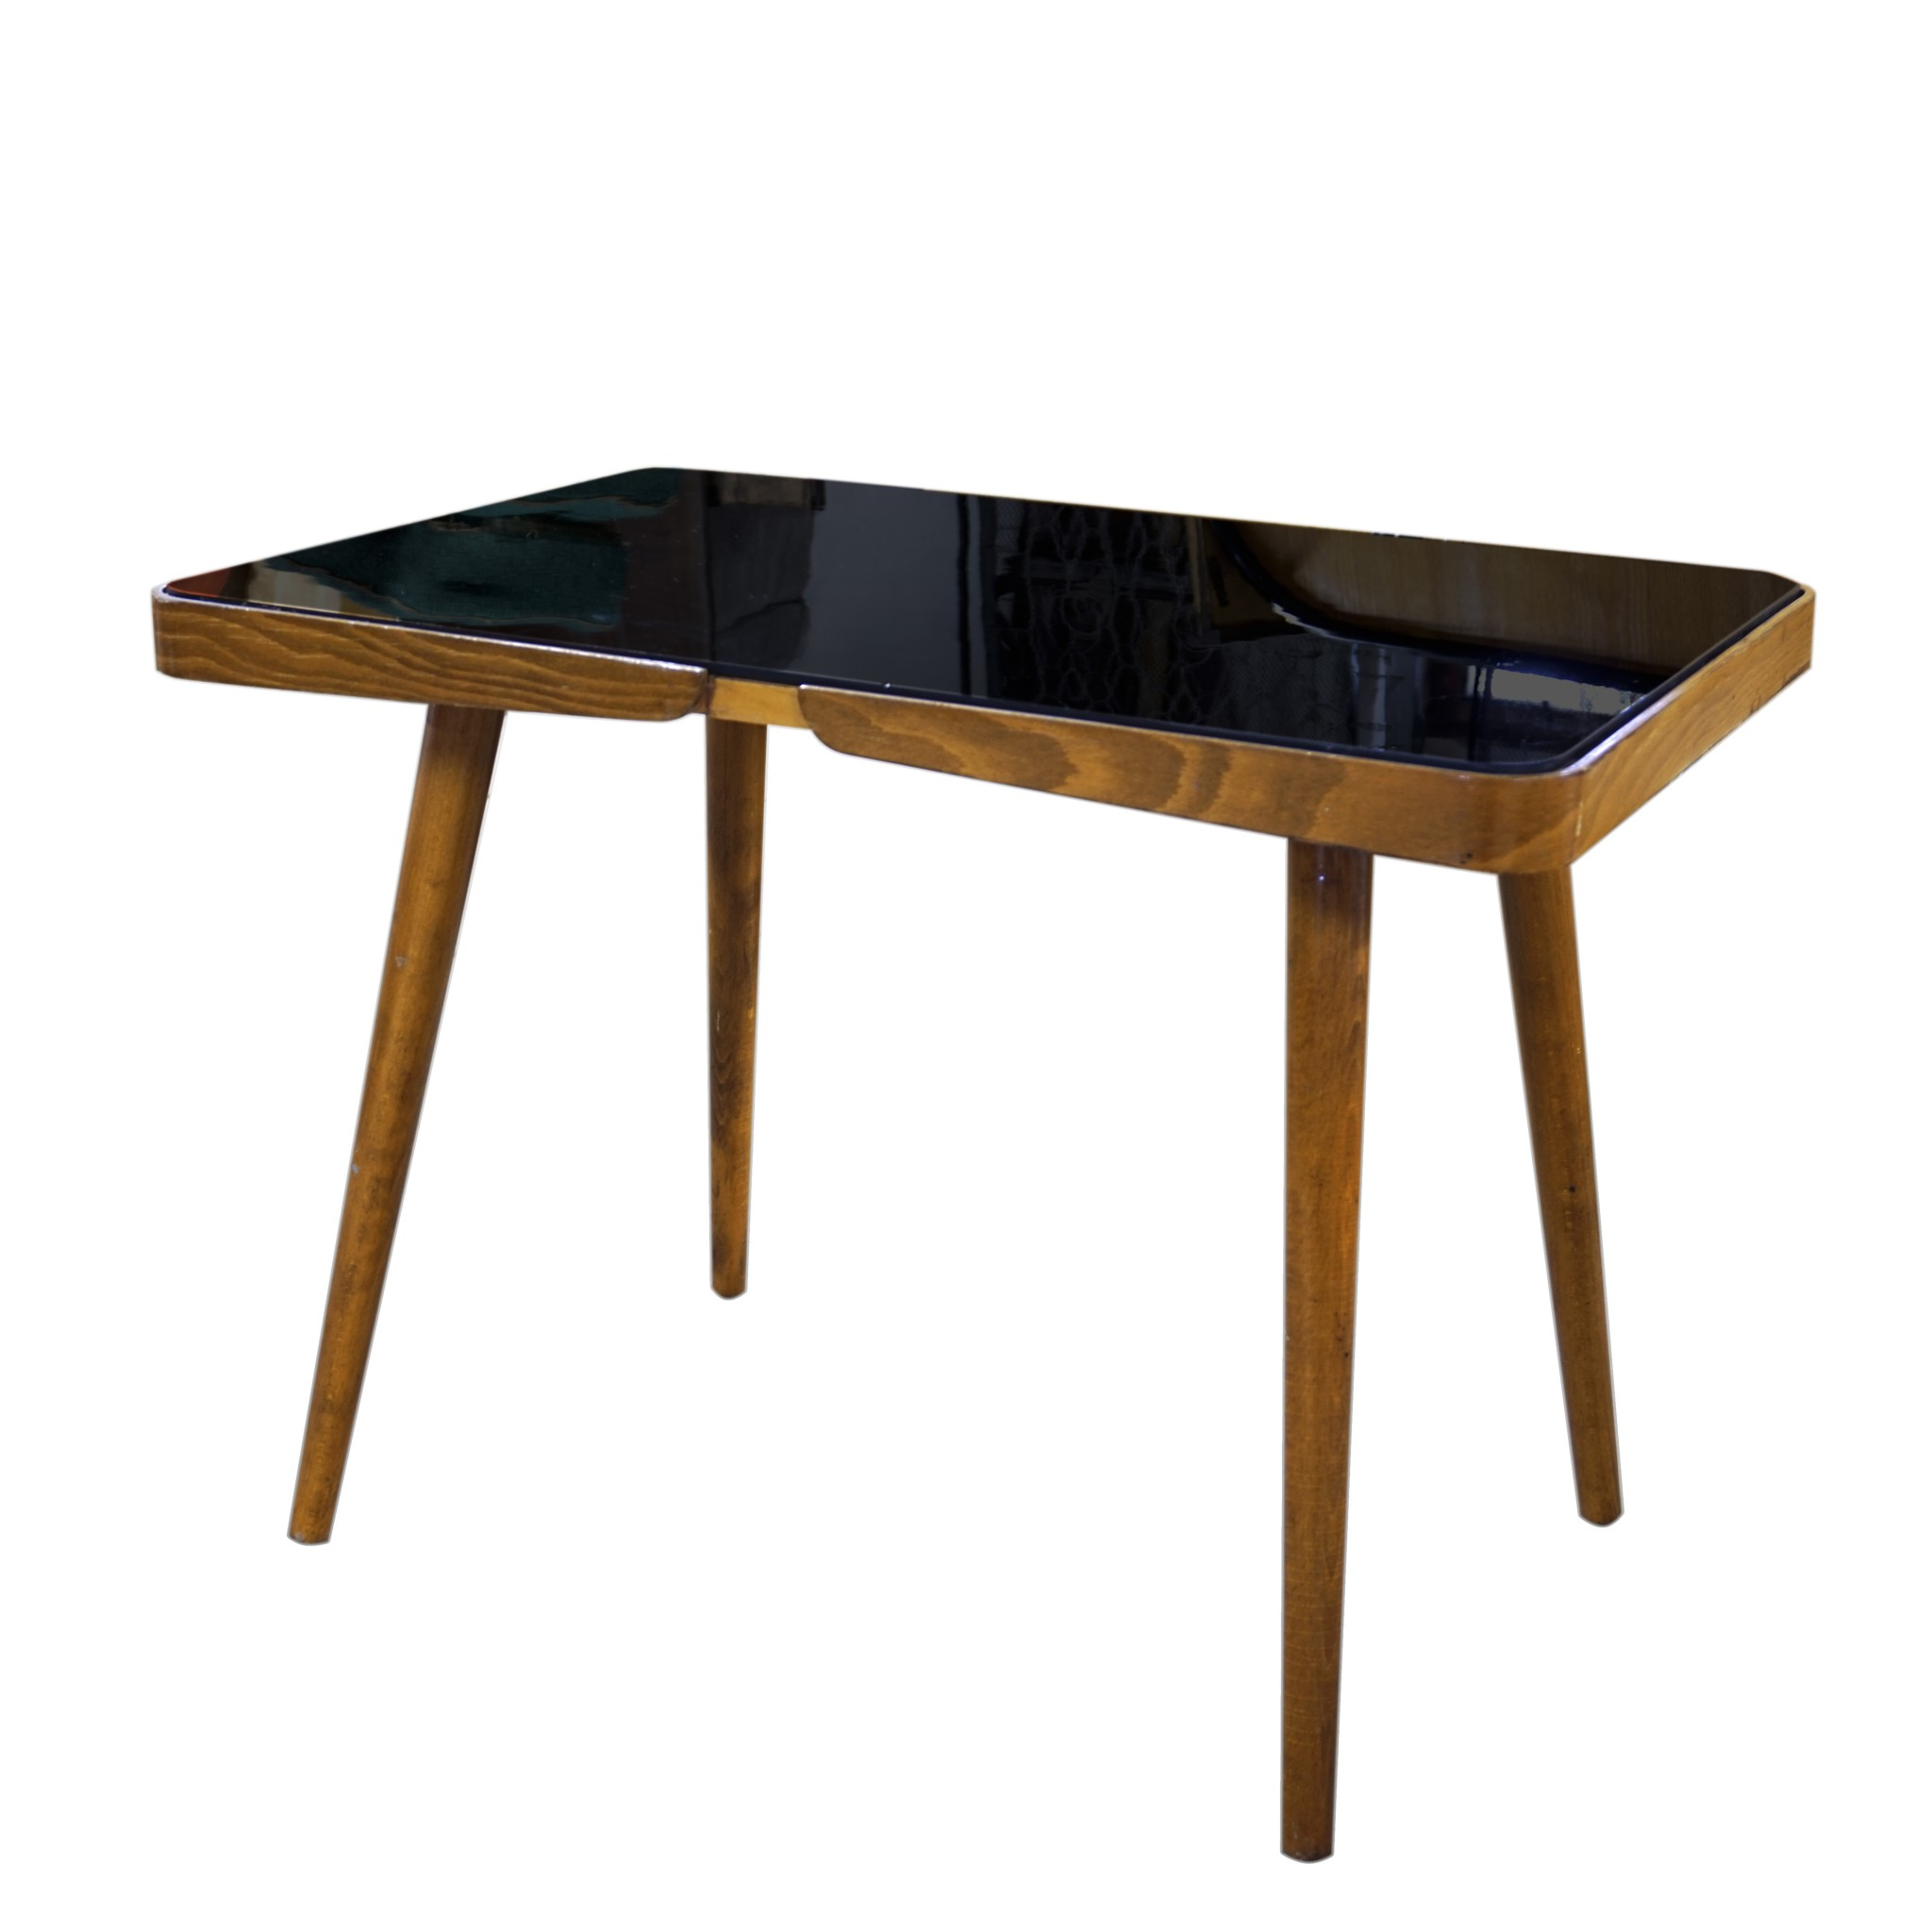 Modernist coffee table 1960´s Czechoslovakia